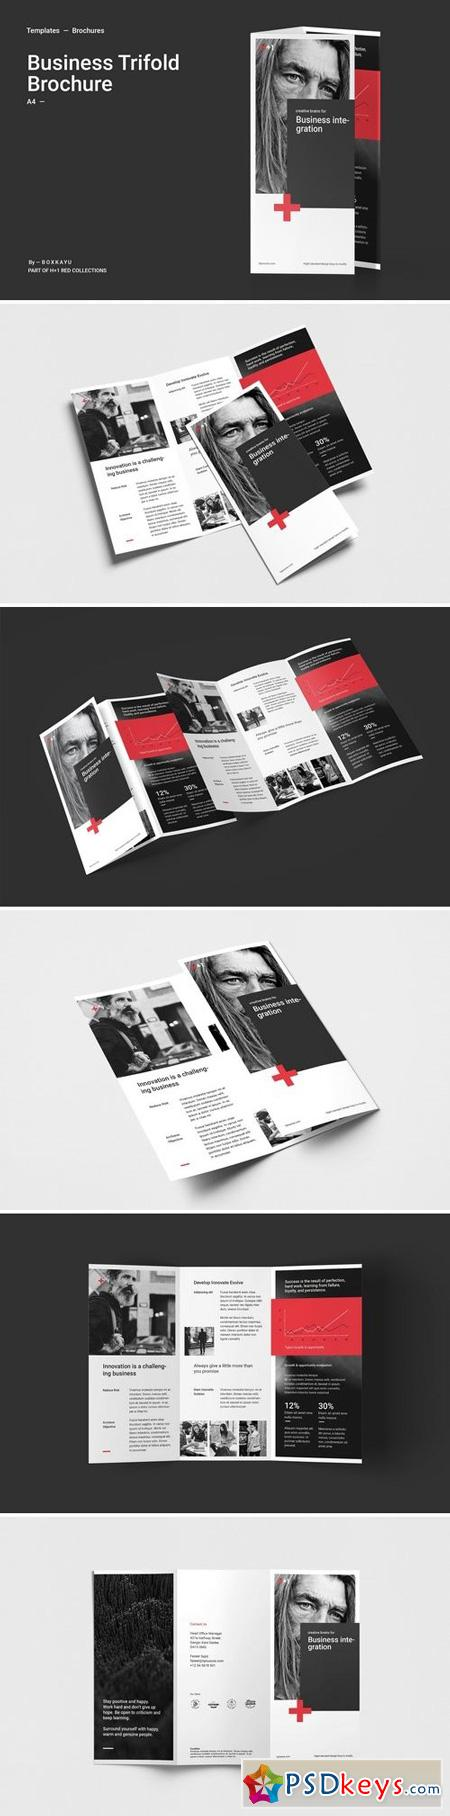 Business Trifold Brochure 2898082